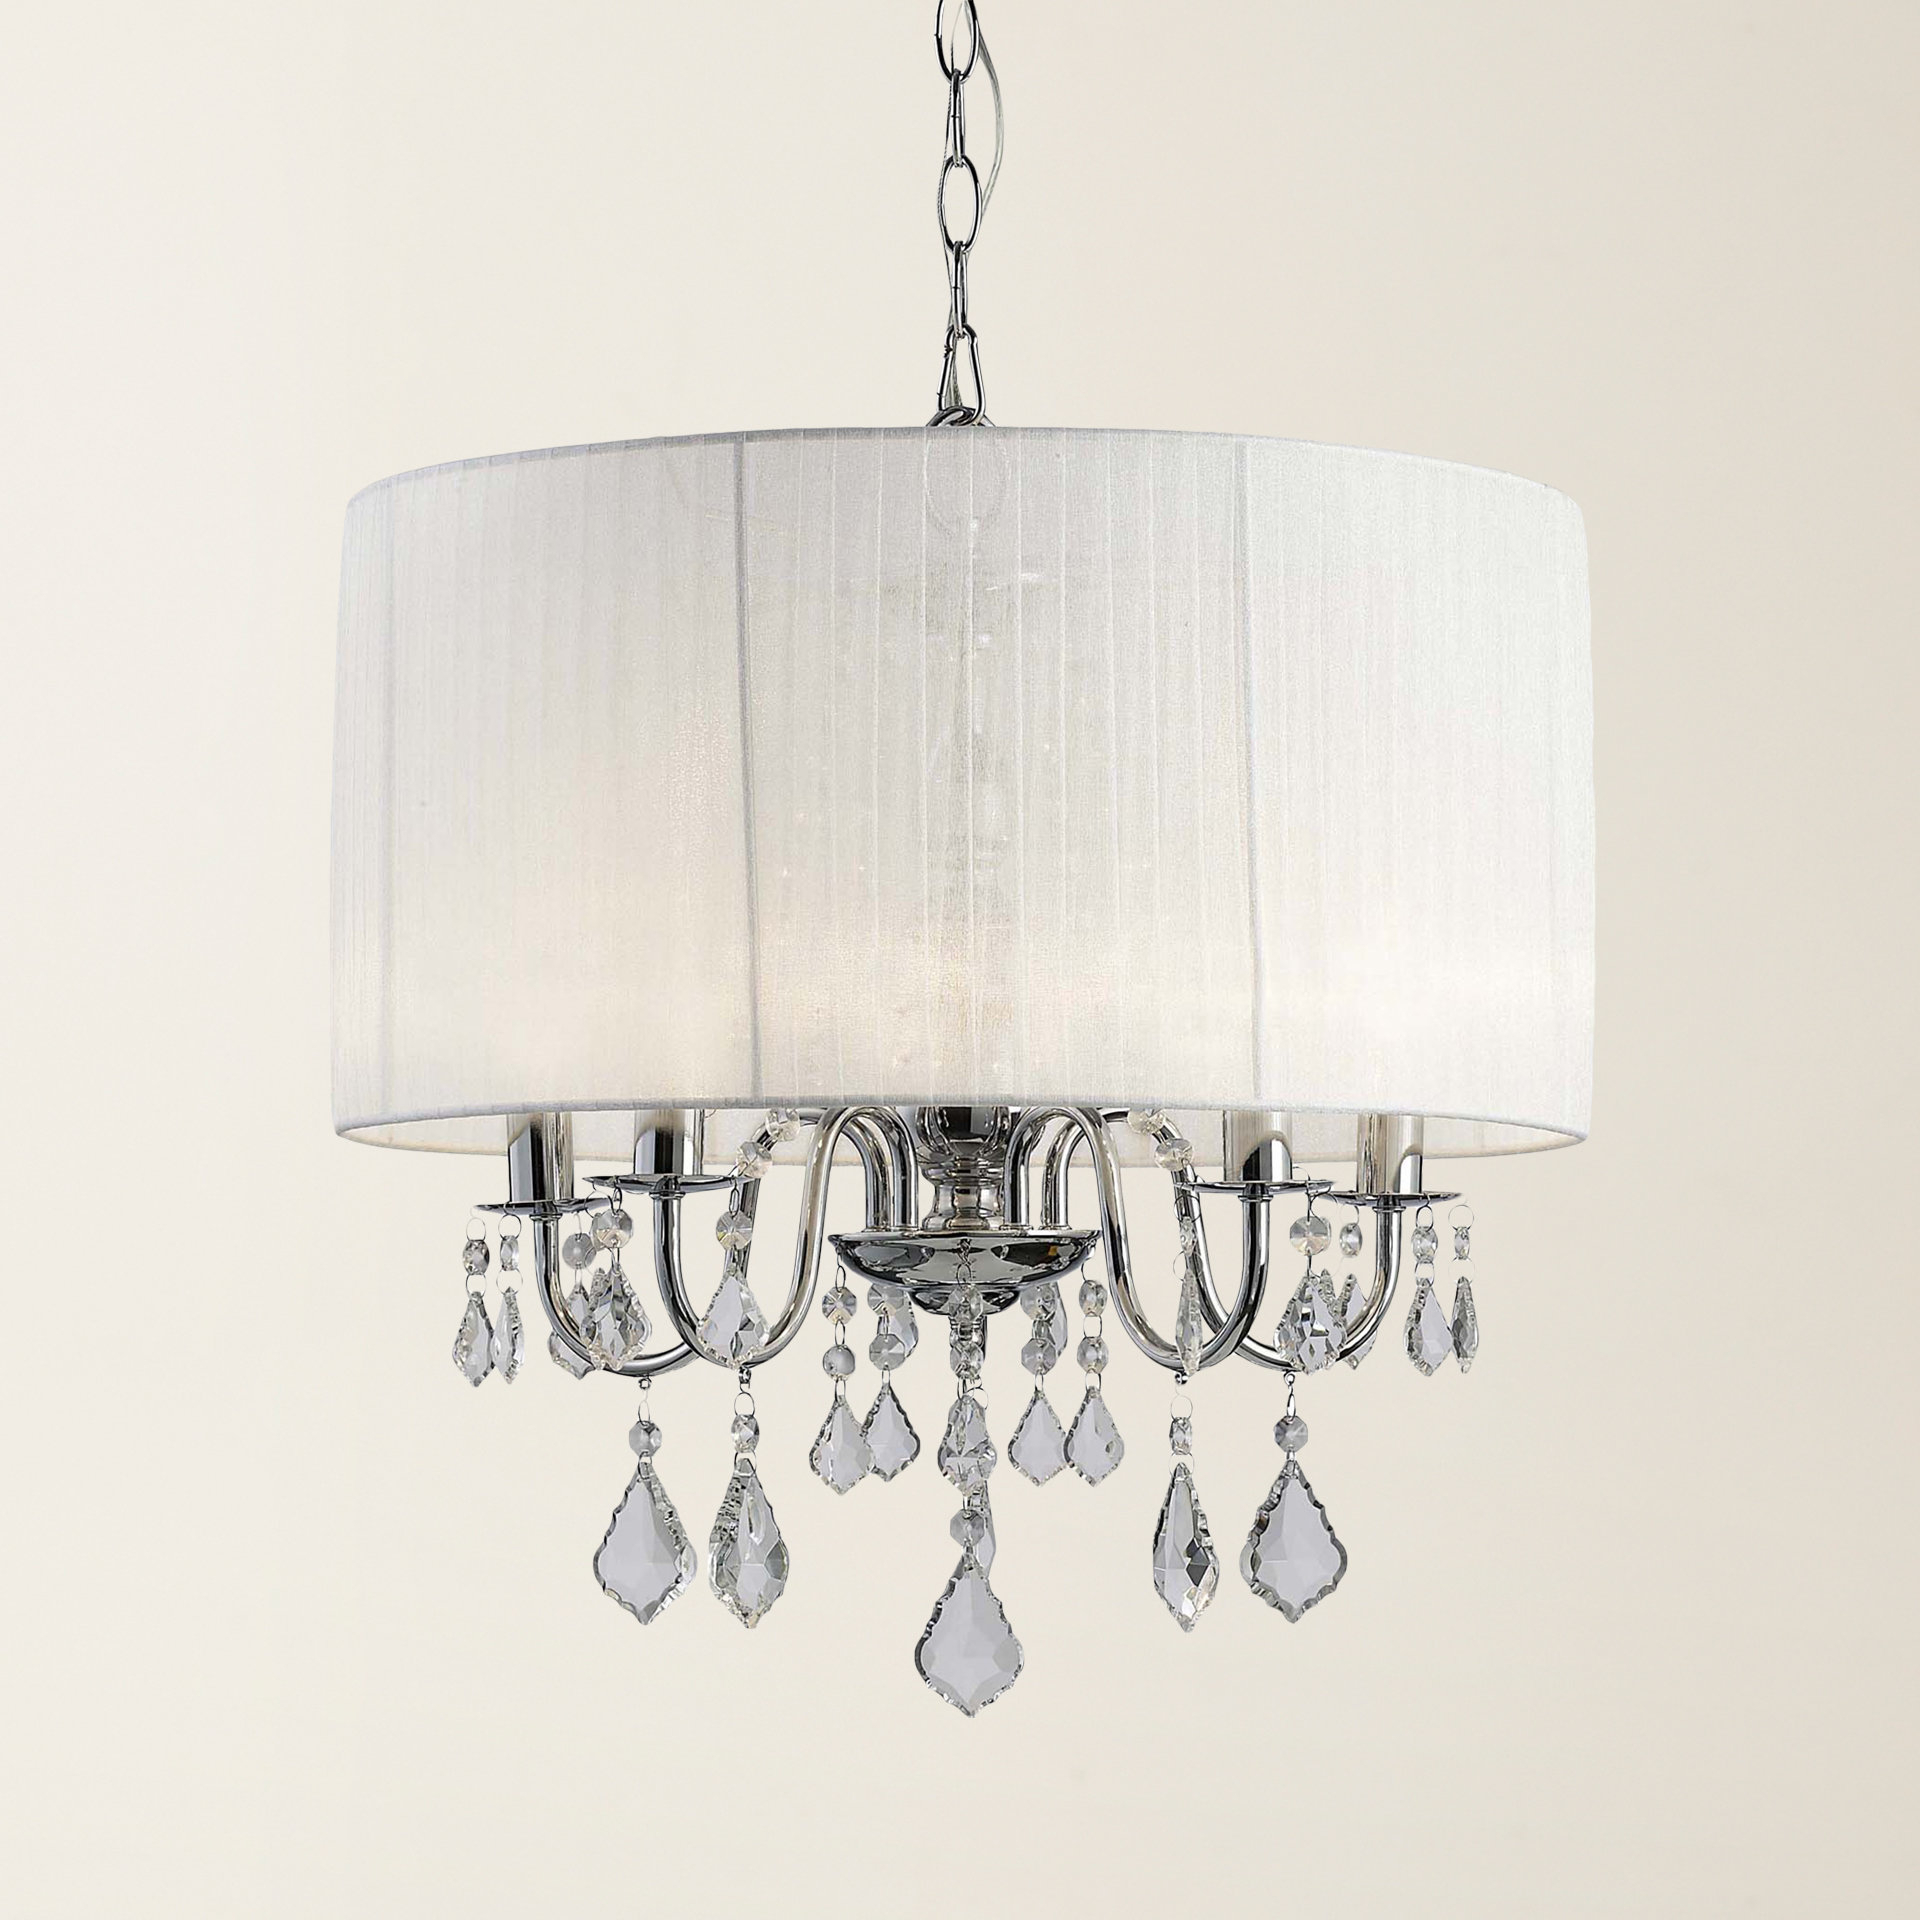 Buster 5 Light Drum Chandelier In Newest Alverez 4 Light Drum Chandeliers (View 22 of 25)